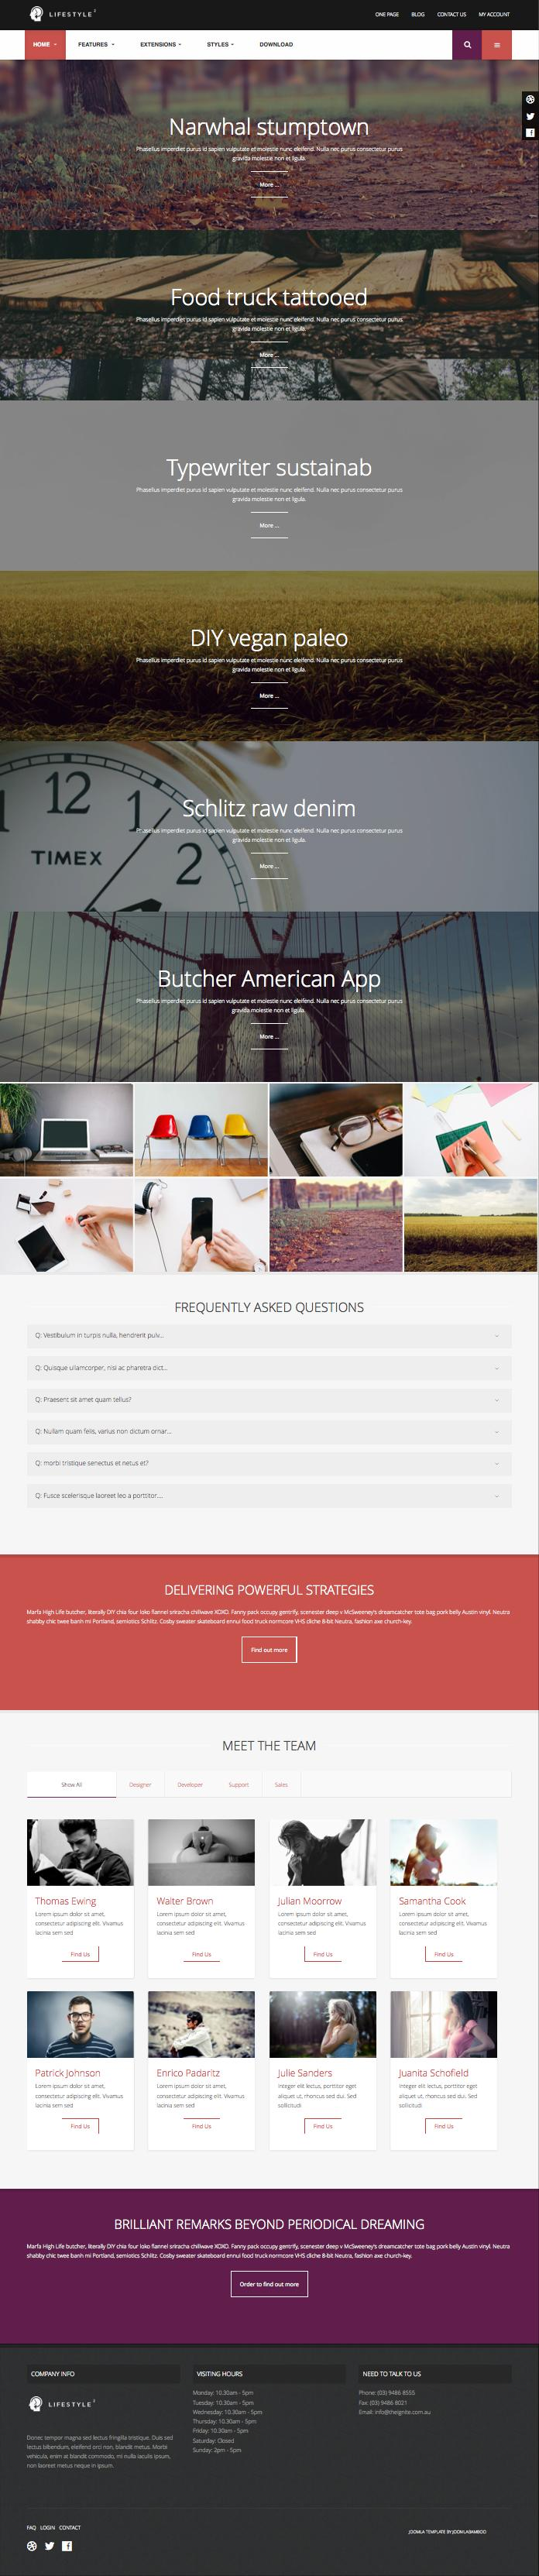 Lifestyle2 Joomla Full Width Responsive Template